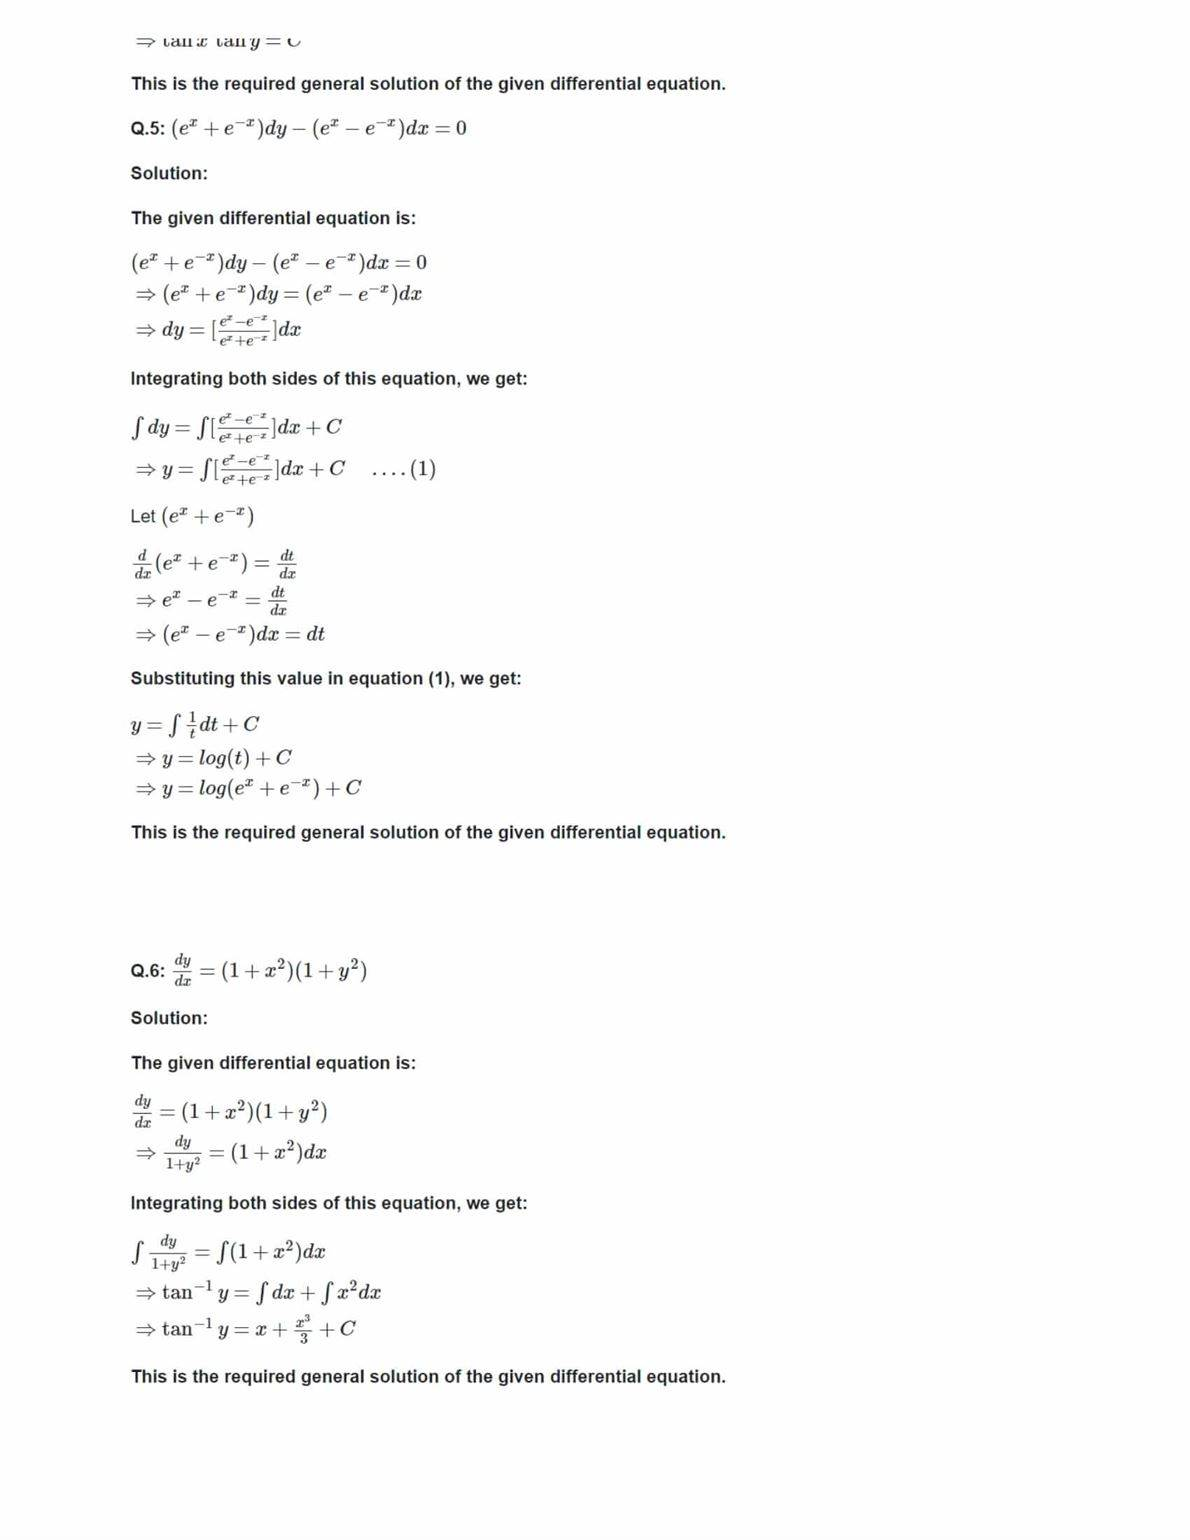 Ncert Solutions For Class 12 Maths Chapter 9 Ex 9.4